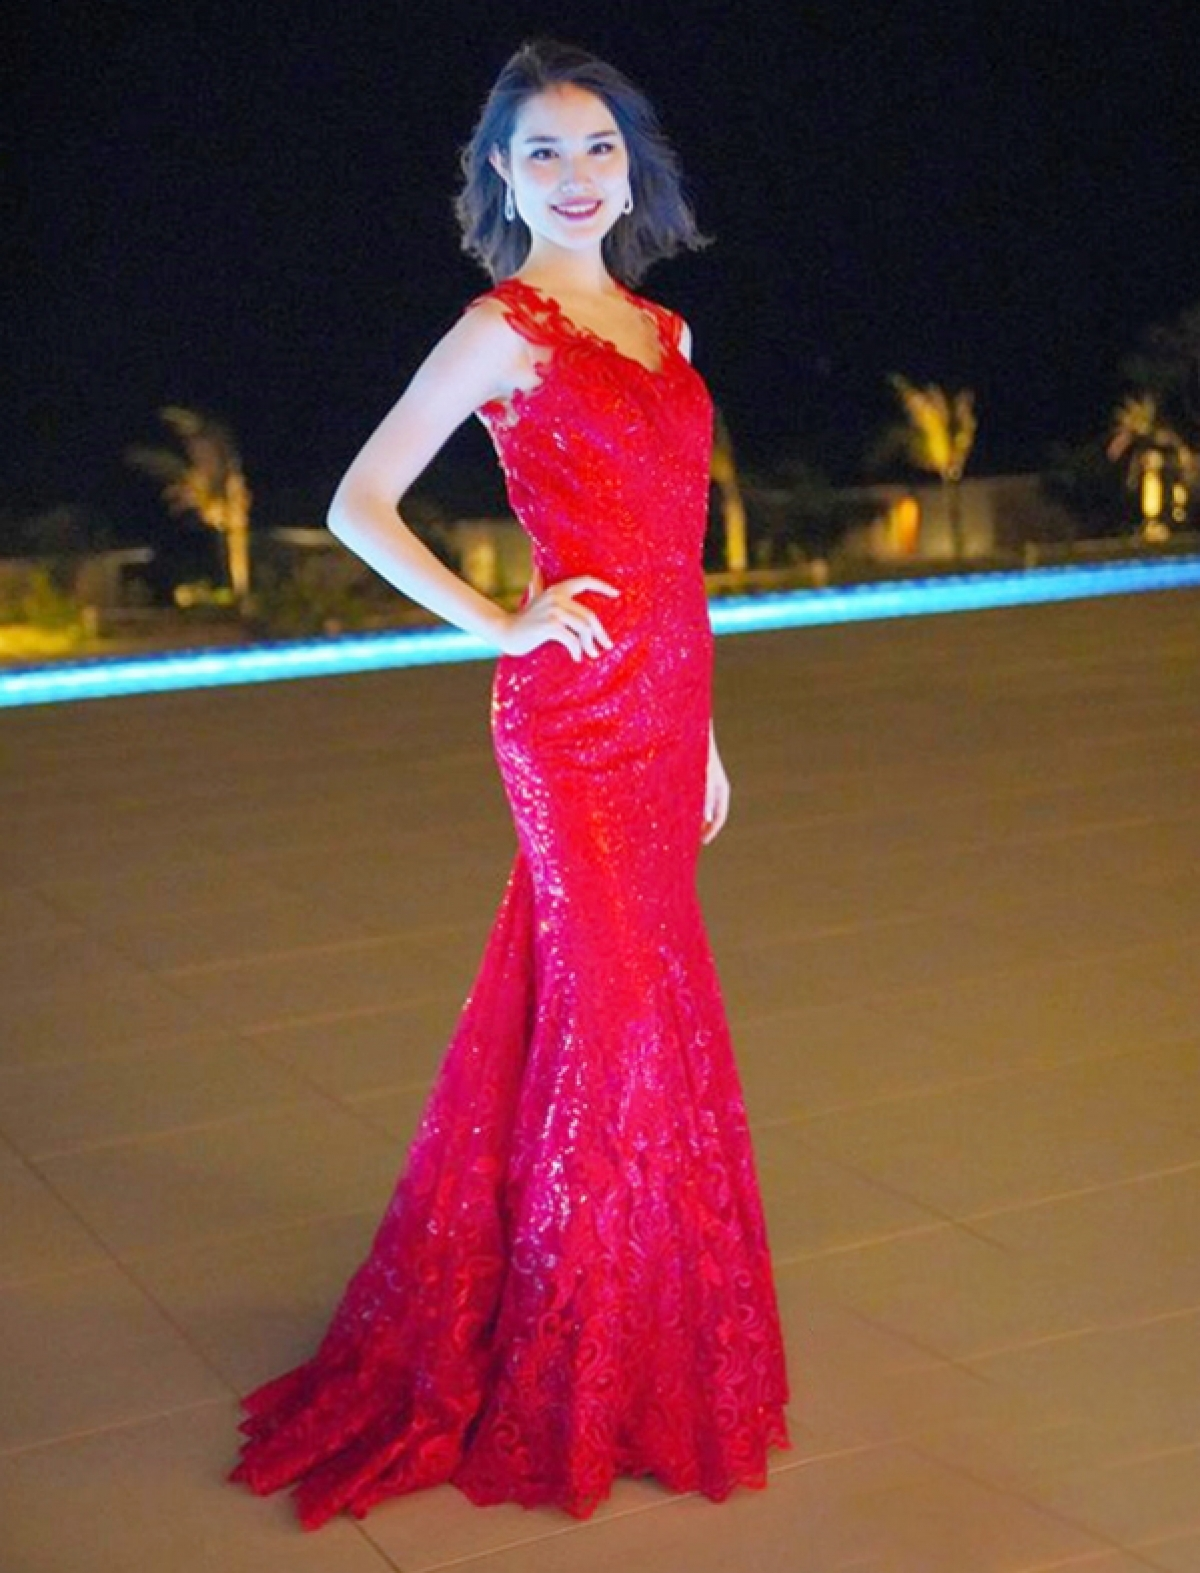 Japanese beauty Anna Tode, 20, shines whilst wearing a red evening gown.